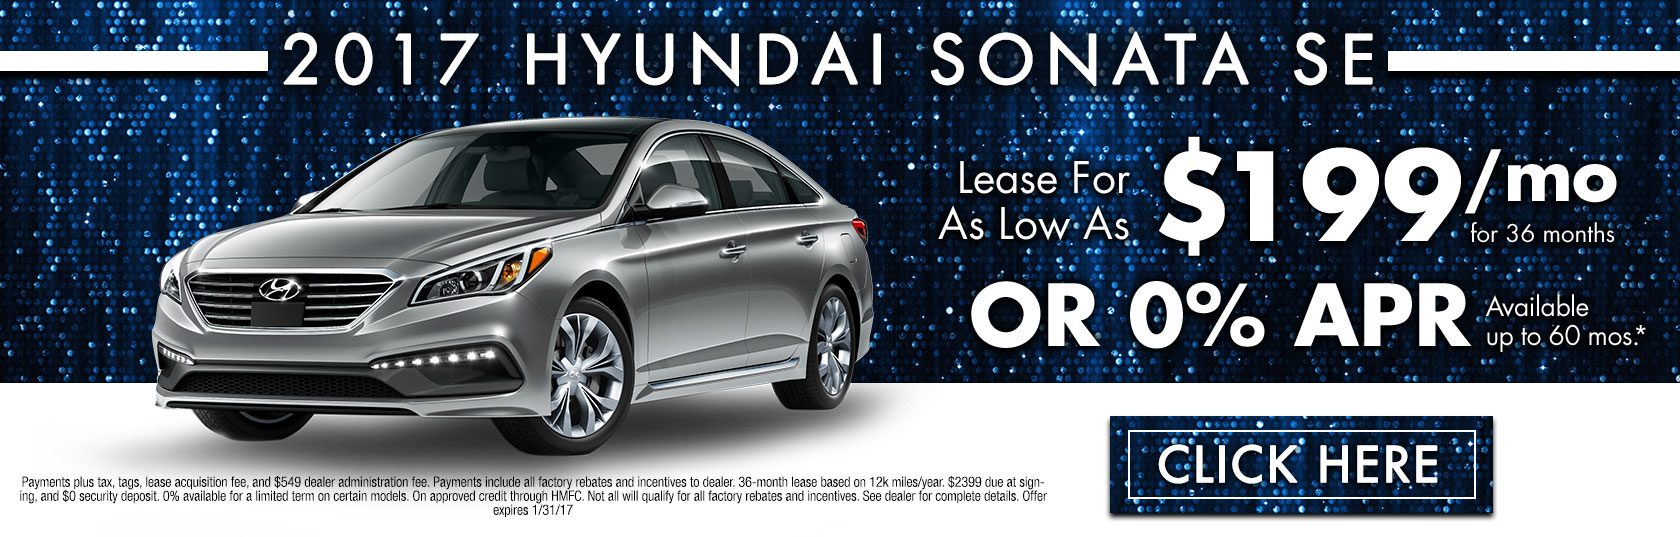 Check Out Our New Hyundai Sonata Inventory Below!